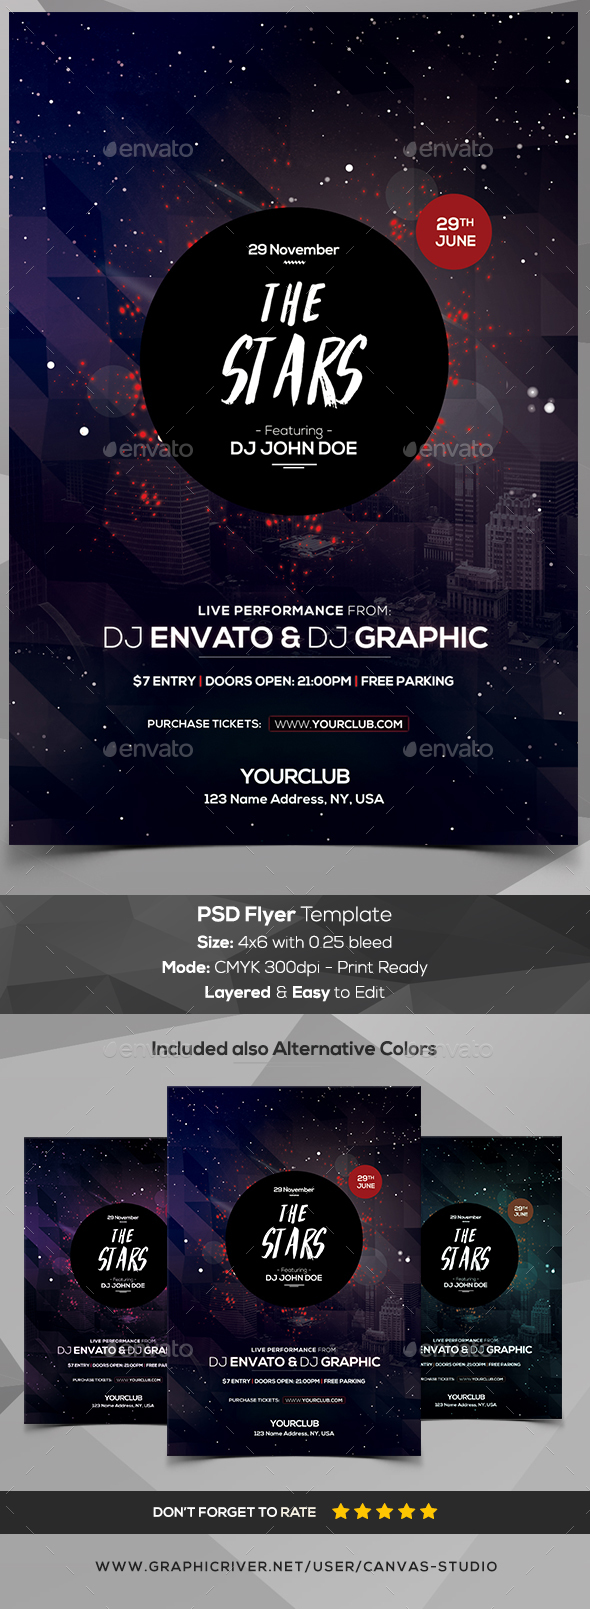 The Stars - PSD Flyer Template - Flyers Print Templates